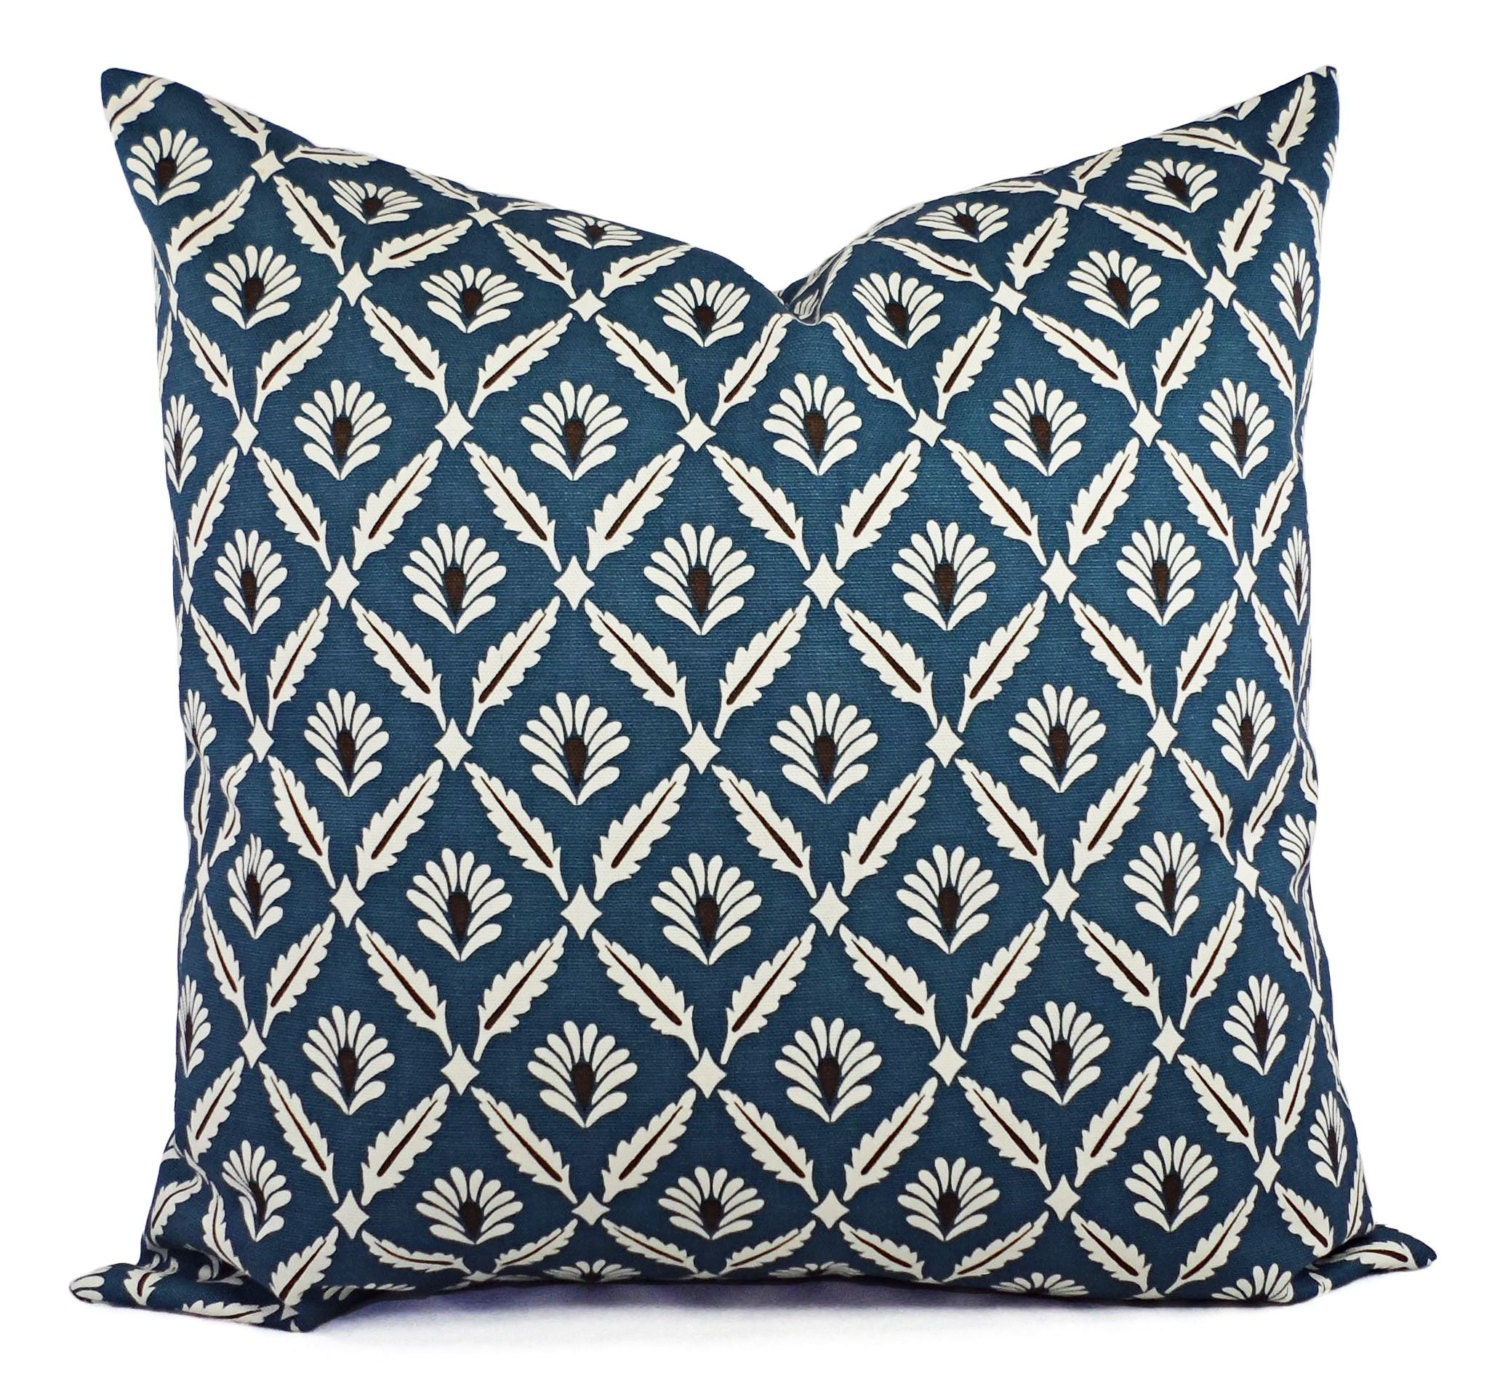 Decorative Pillows Blue : Two Decorative Pillow Covers Blue and Beige Blue Throw